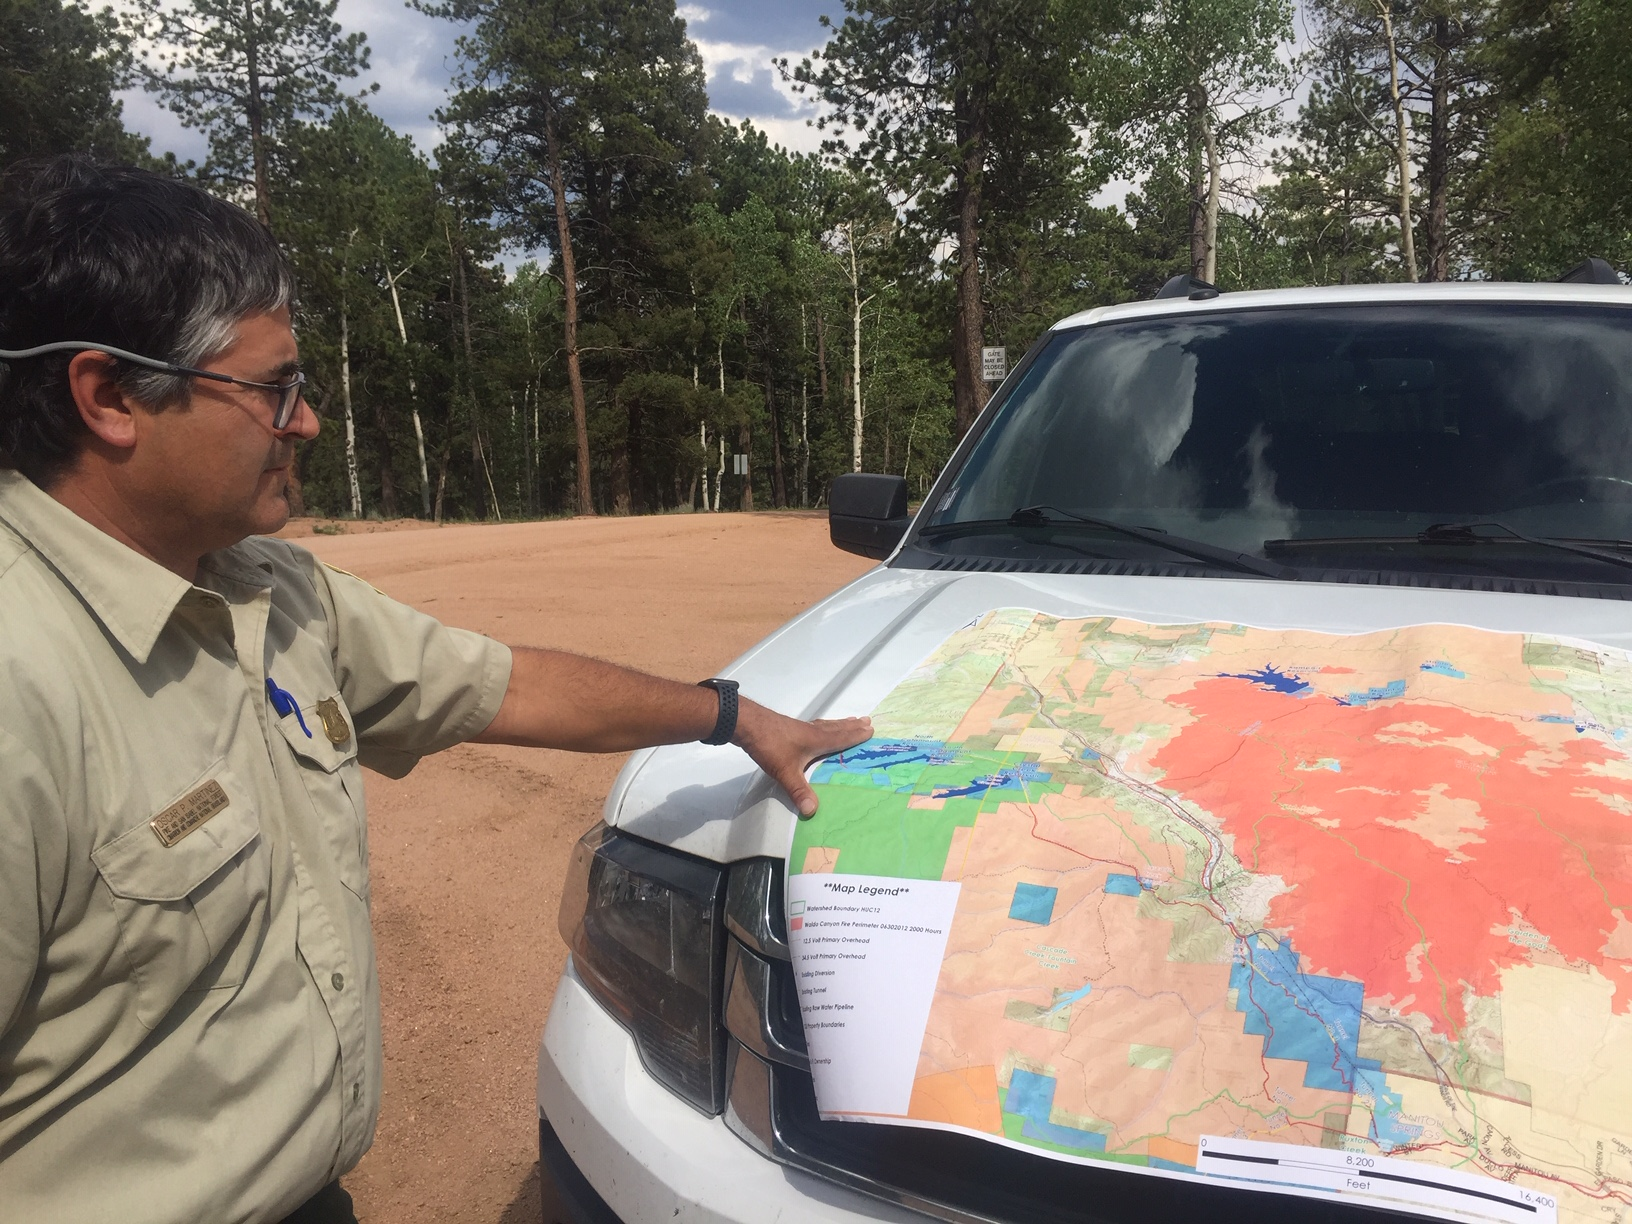 Oscar Martinez with the US Forest Service points to a map where water infrastructure and forested lands overlap